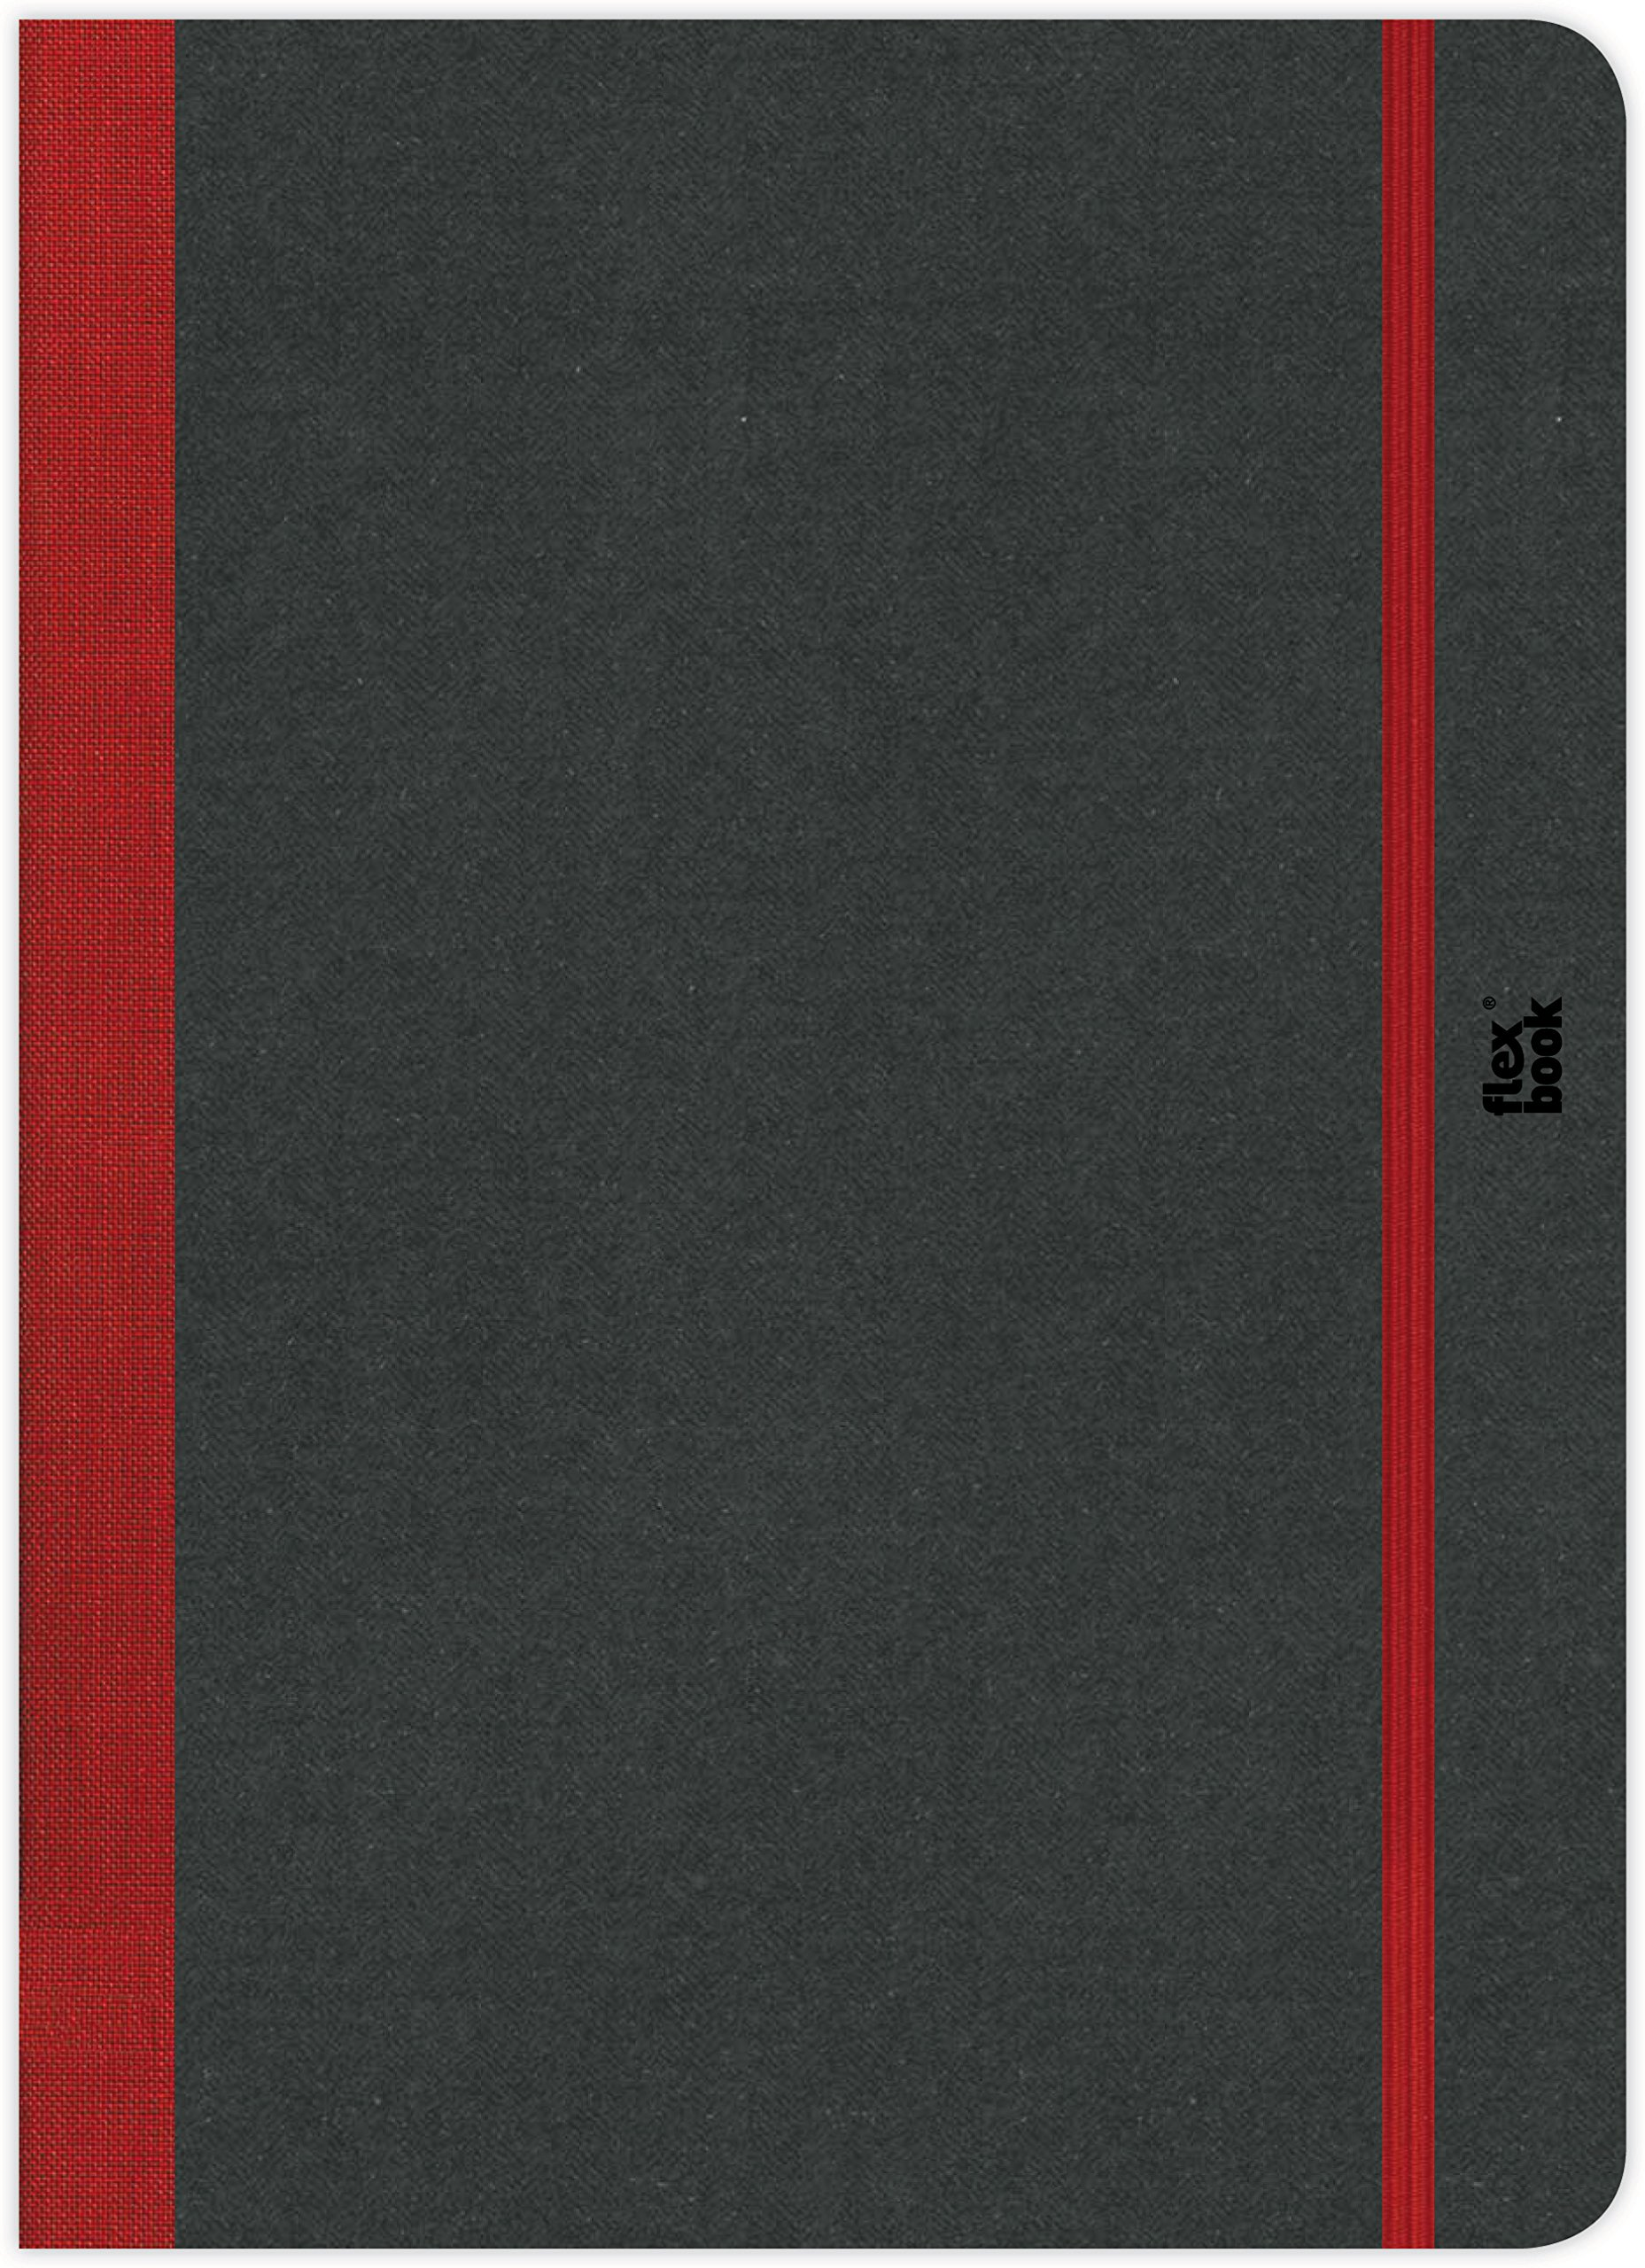 Flexbook Sketchbook, Munken Special White Paper, 8.5 X 12.25 inches, 80 Sheets, 170 GMS, Red (60.00027) by Flexbook